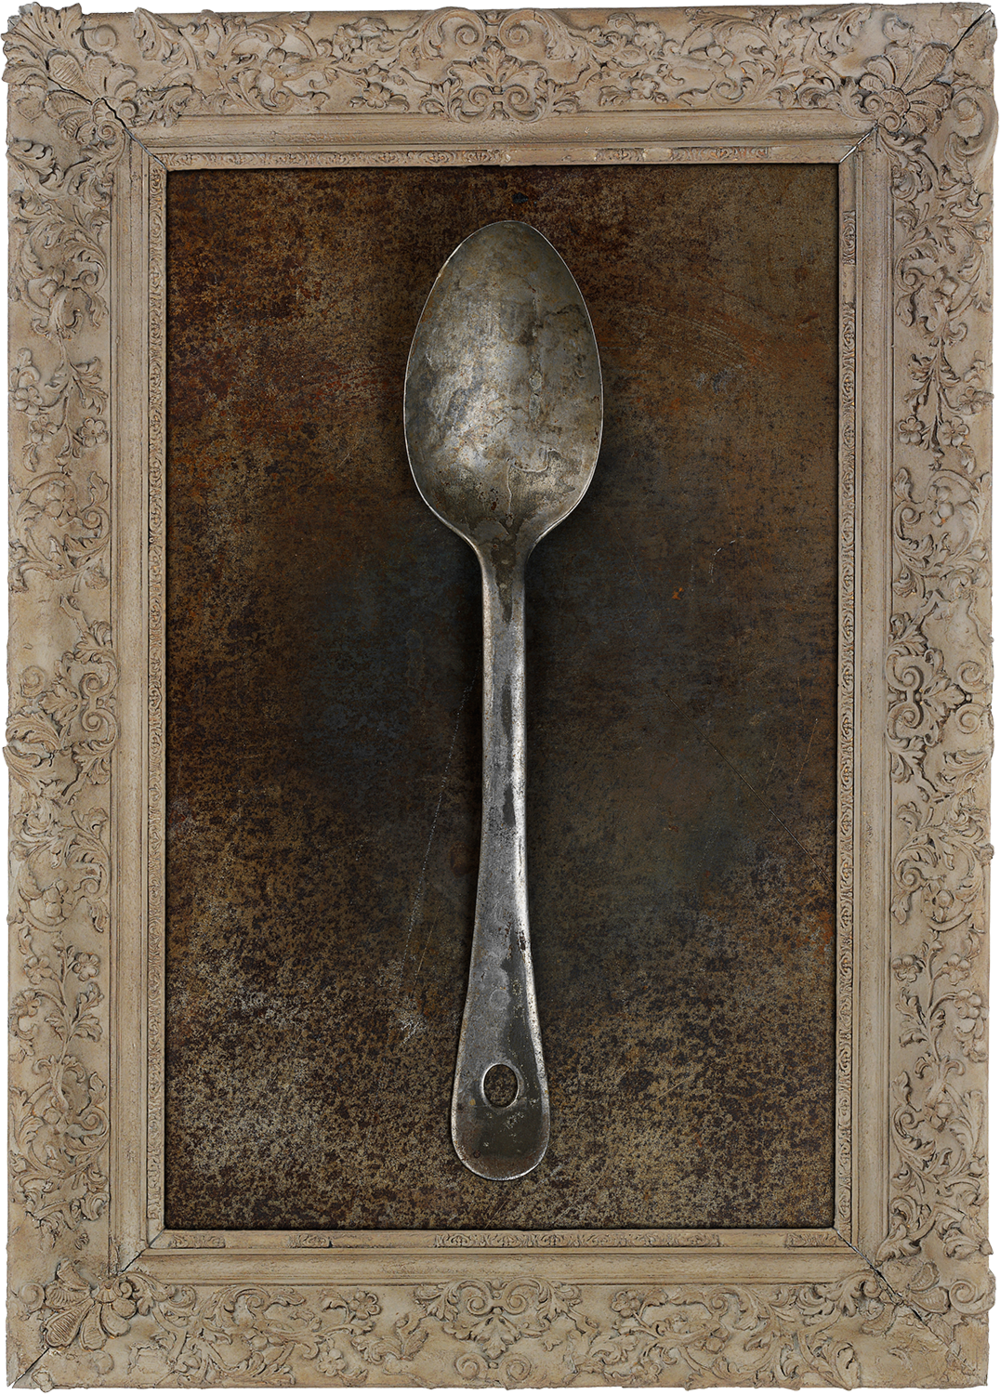 #30 Serving Spoon